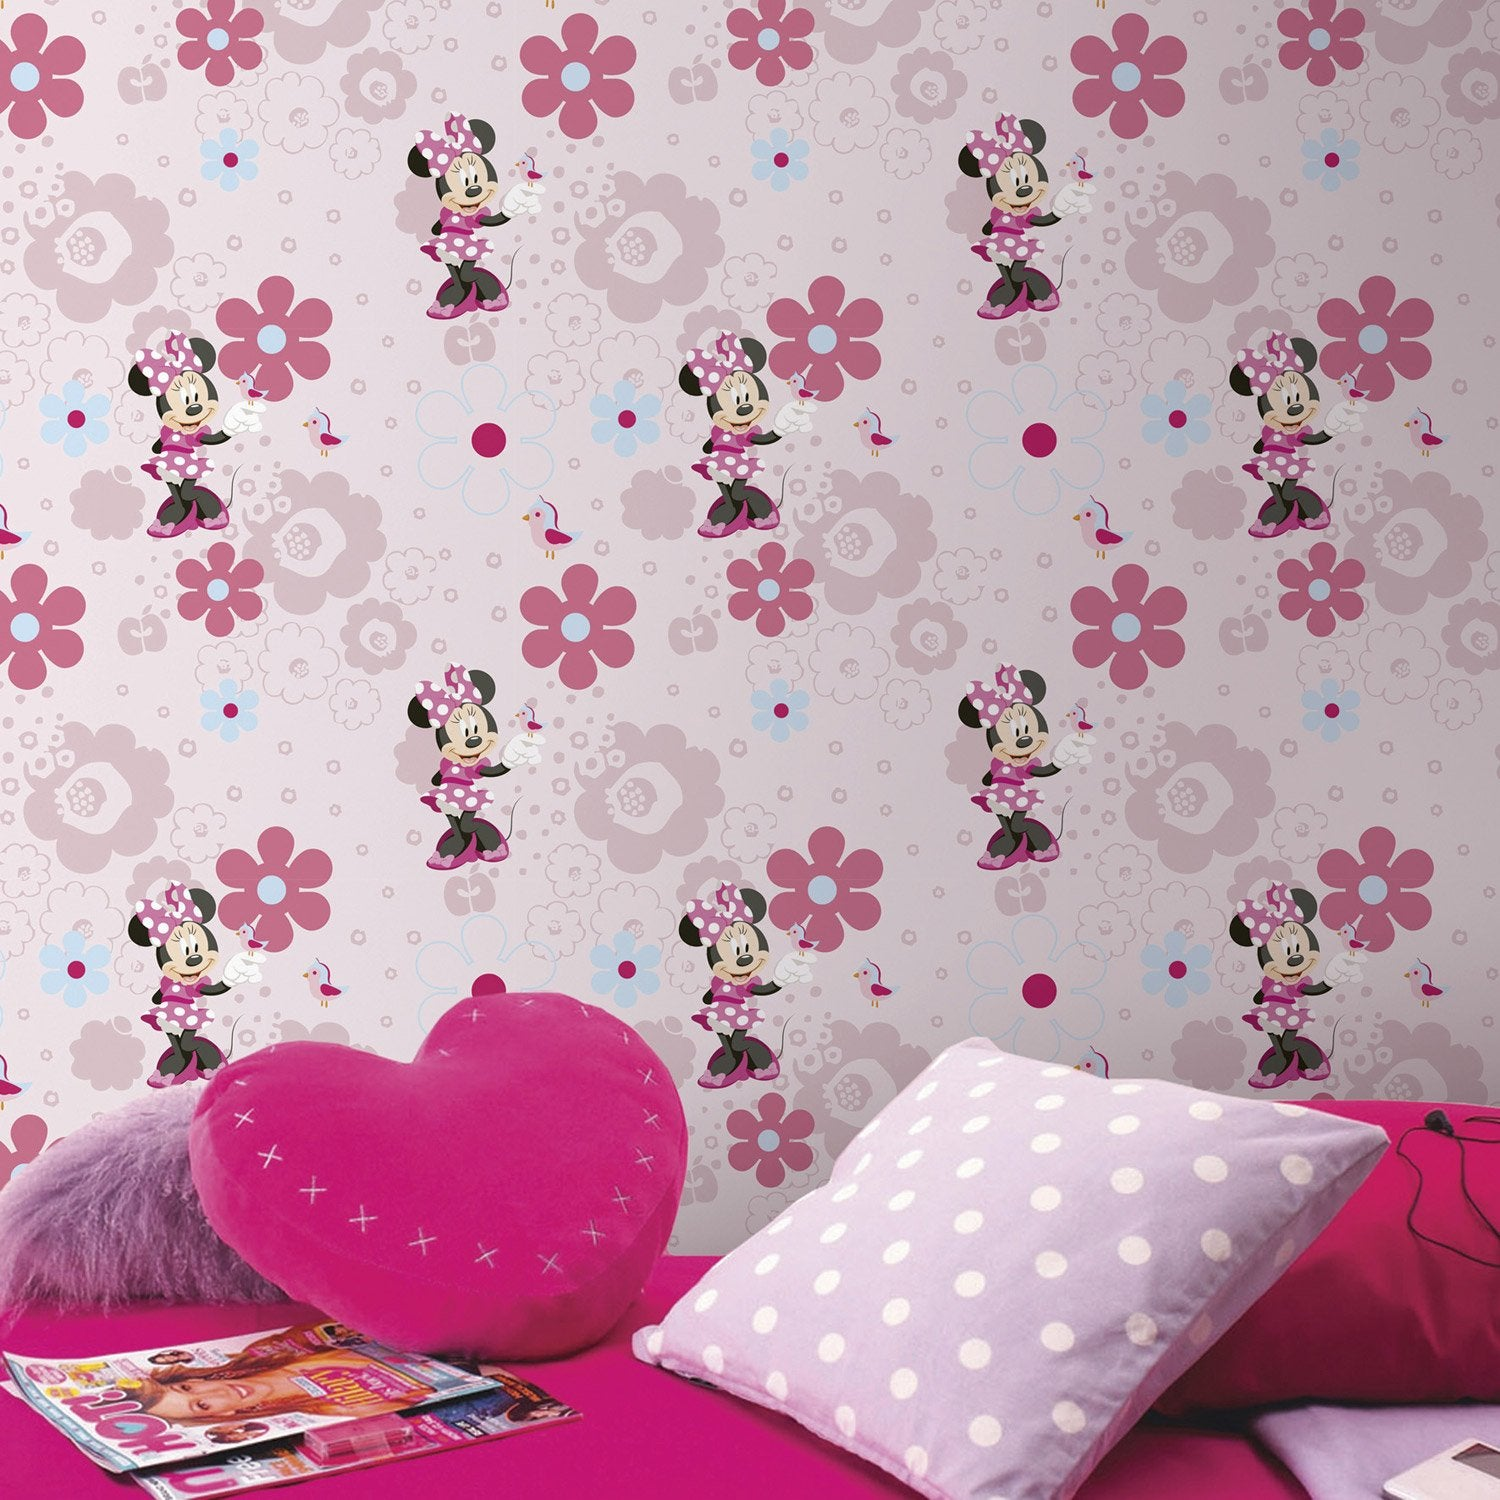 papier peint papier disney minnie rose leroy merlin. Black Bedroom Furniture Sets. Home Design Ideas